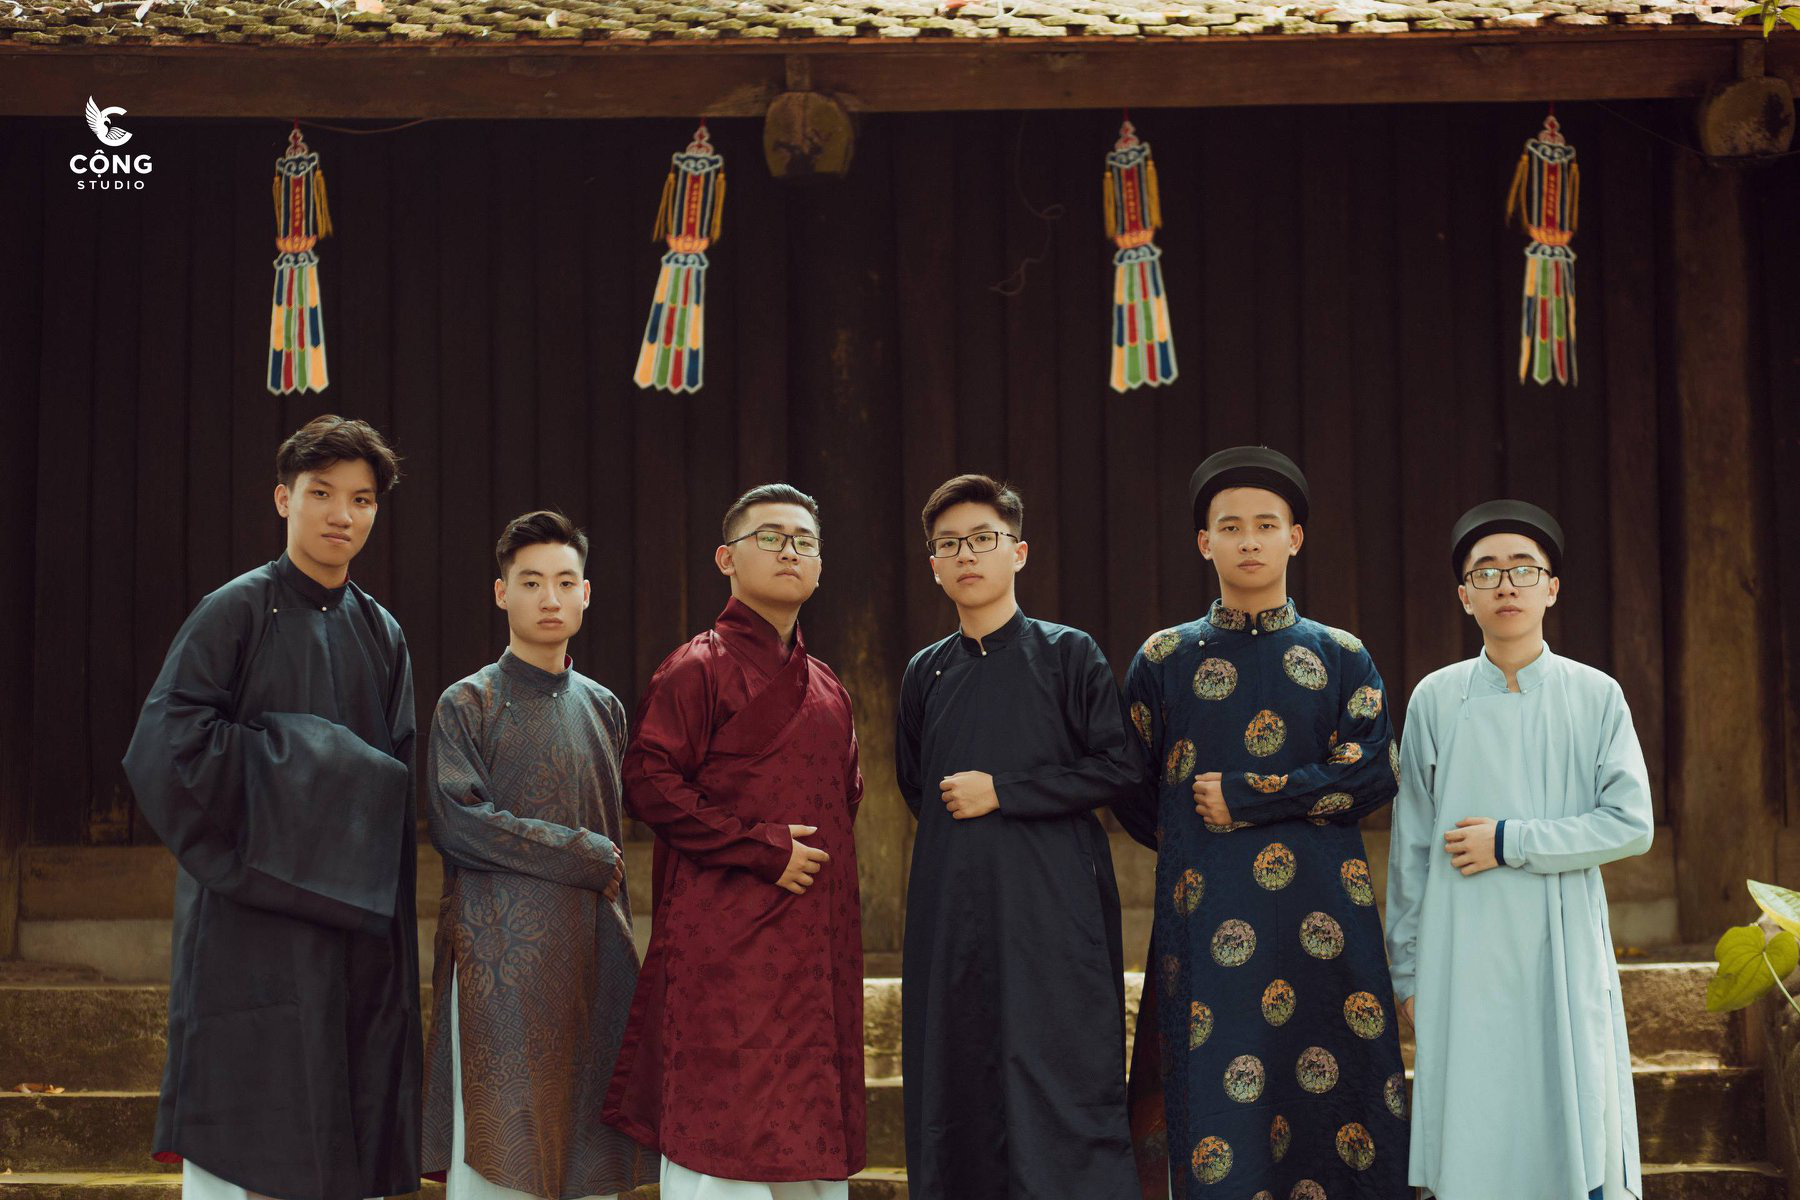 Six male students wear Vietnamese ancient costumes in this supplied yearbook photo.